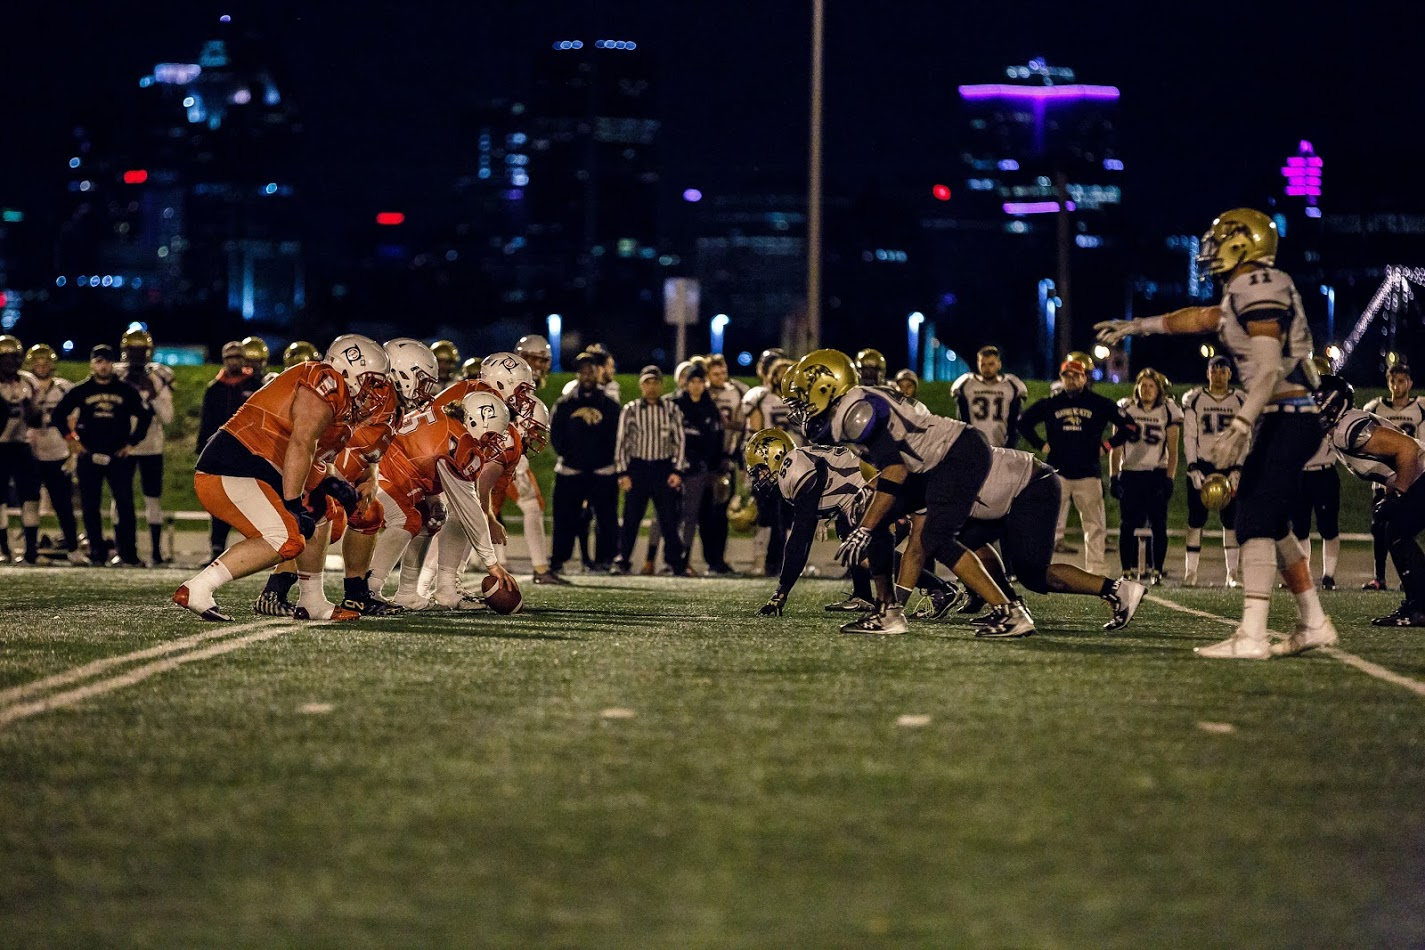 Semi-Final: Sabercats vs Bruizers